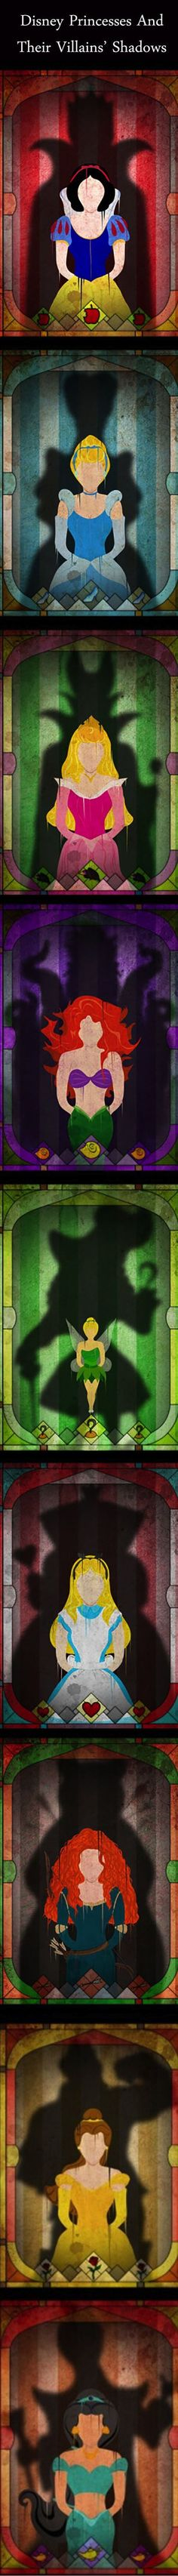 9 Disney Heroes Who Are Haunted By Their Villains' Shadows | Disney princesses and their villain's shadows Snow white, Cinderella, The little mermaid, tinkerbell piter pan, Alice in wonderland, brave Merida, Beauty and the beast, aladdin jasmine